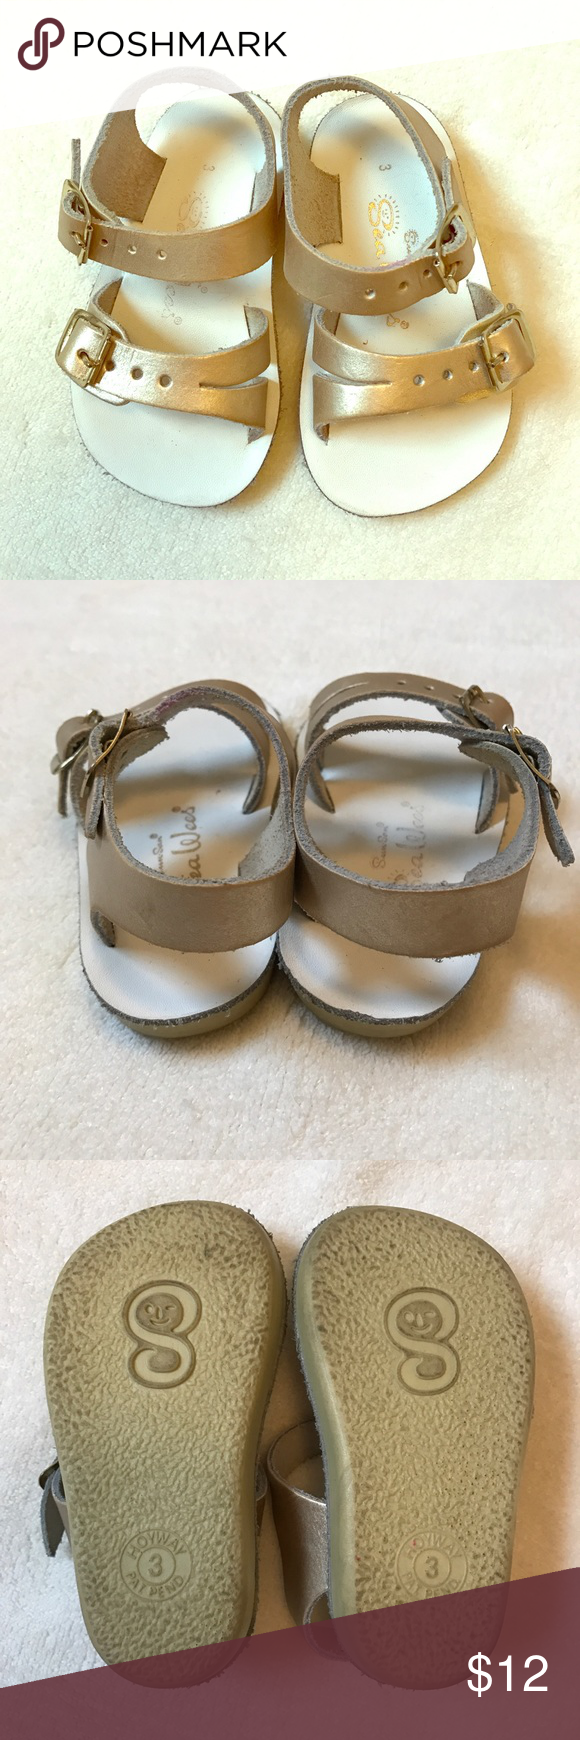 Gold Saltwater Sandal Toddler Girl Great little sandals for your little one! Comfy and water proof. Great condition! Size 3. Salt Water Sandals by Hoy Shoes Sandals & Flip Flops